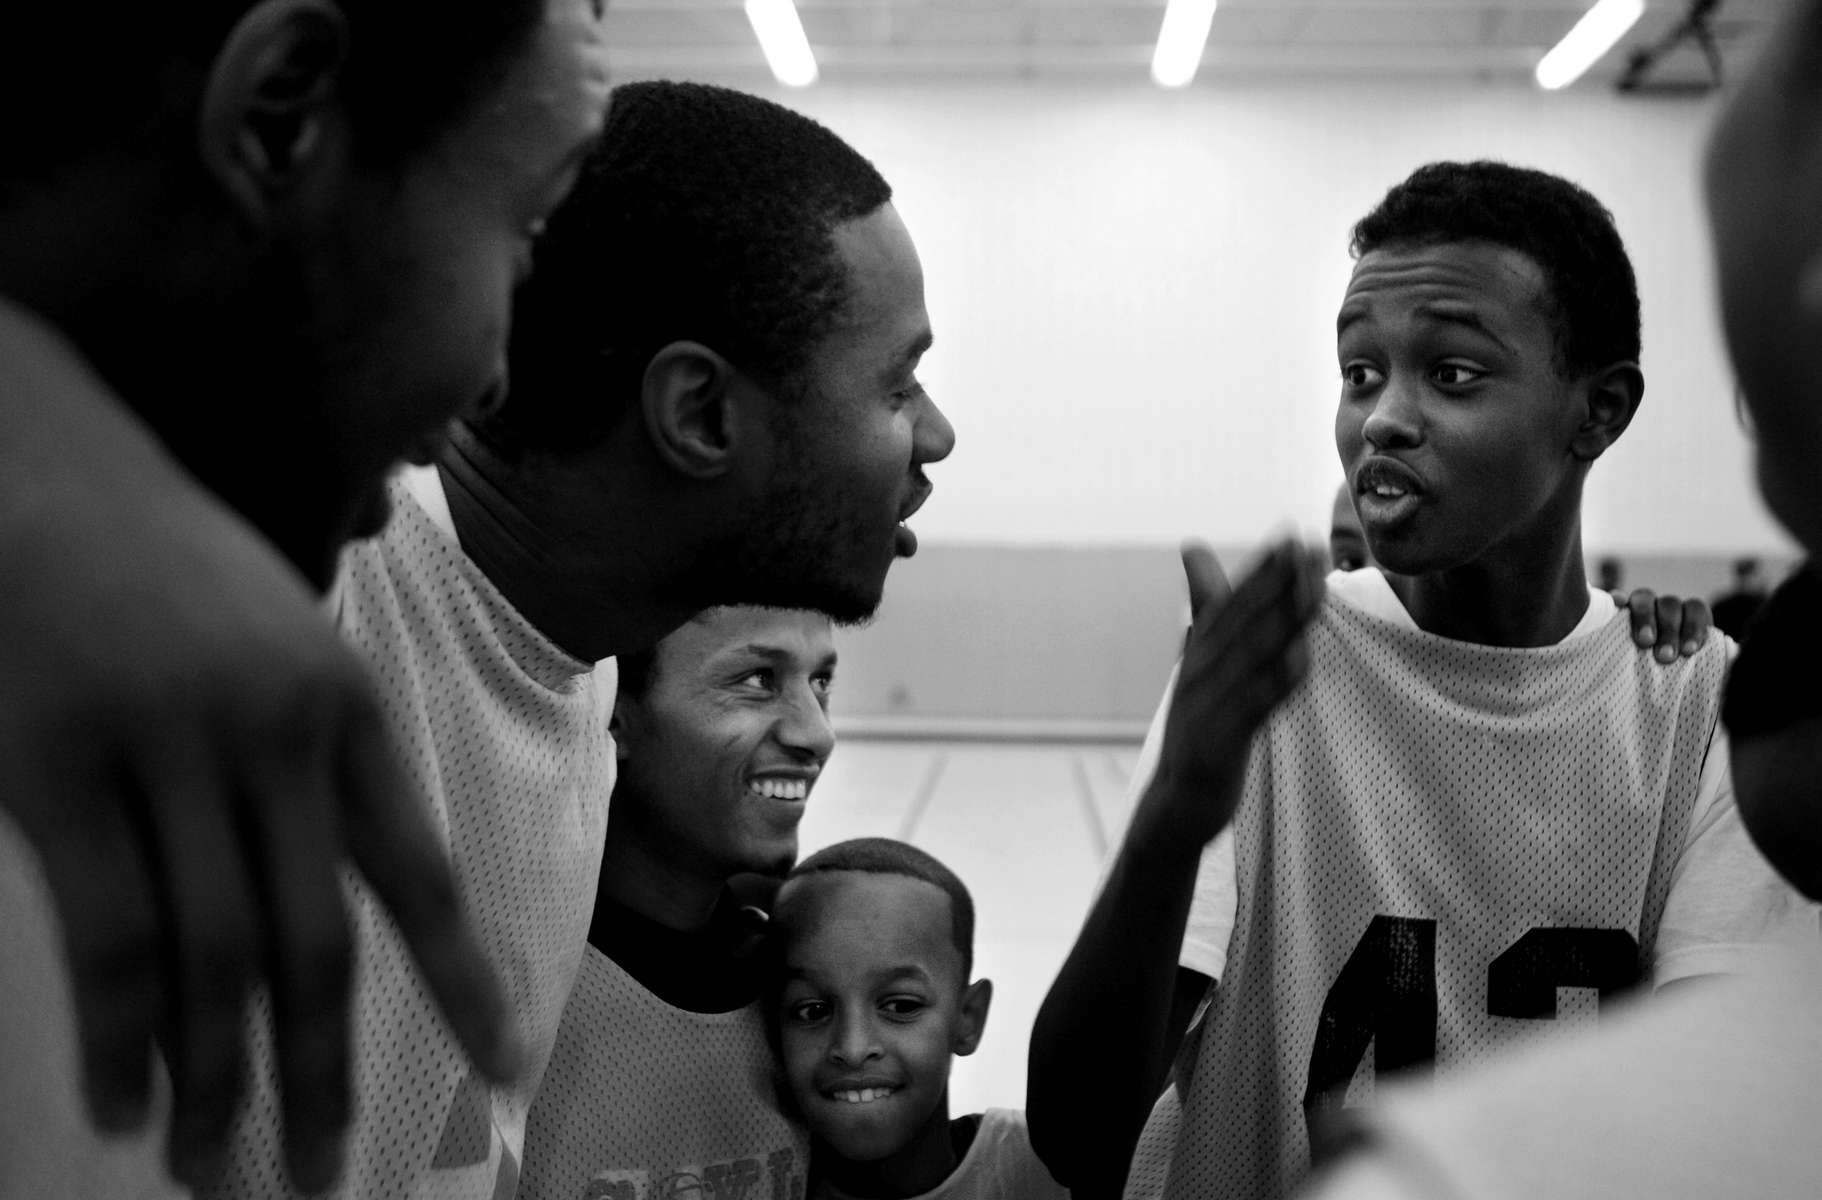 Mohamed Jama, 16, right, jokes with his teammates before a basketball game at The Brian Coyle Community Center in Minneapolis. Jama has taken an active role in leading the young people of his community.